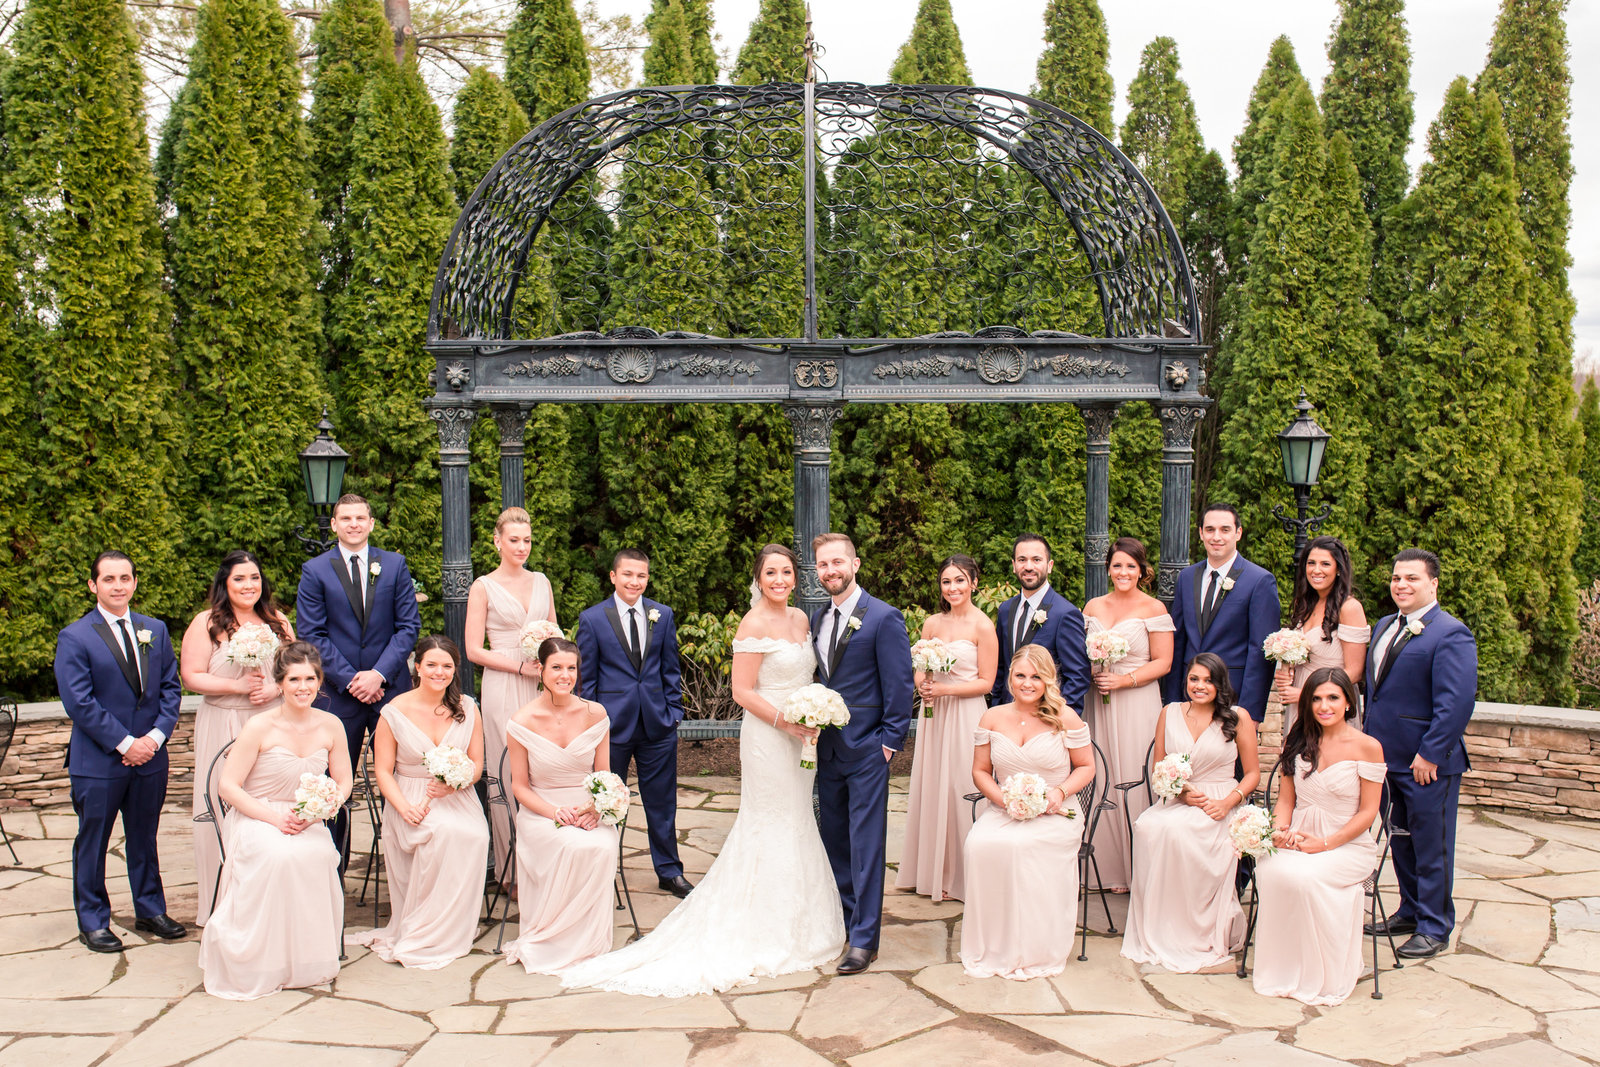 Bridal party photo at Park Savoy Estate